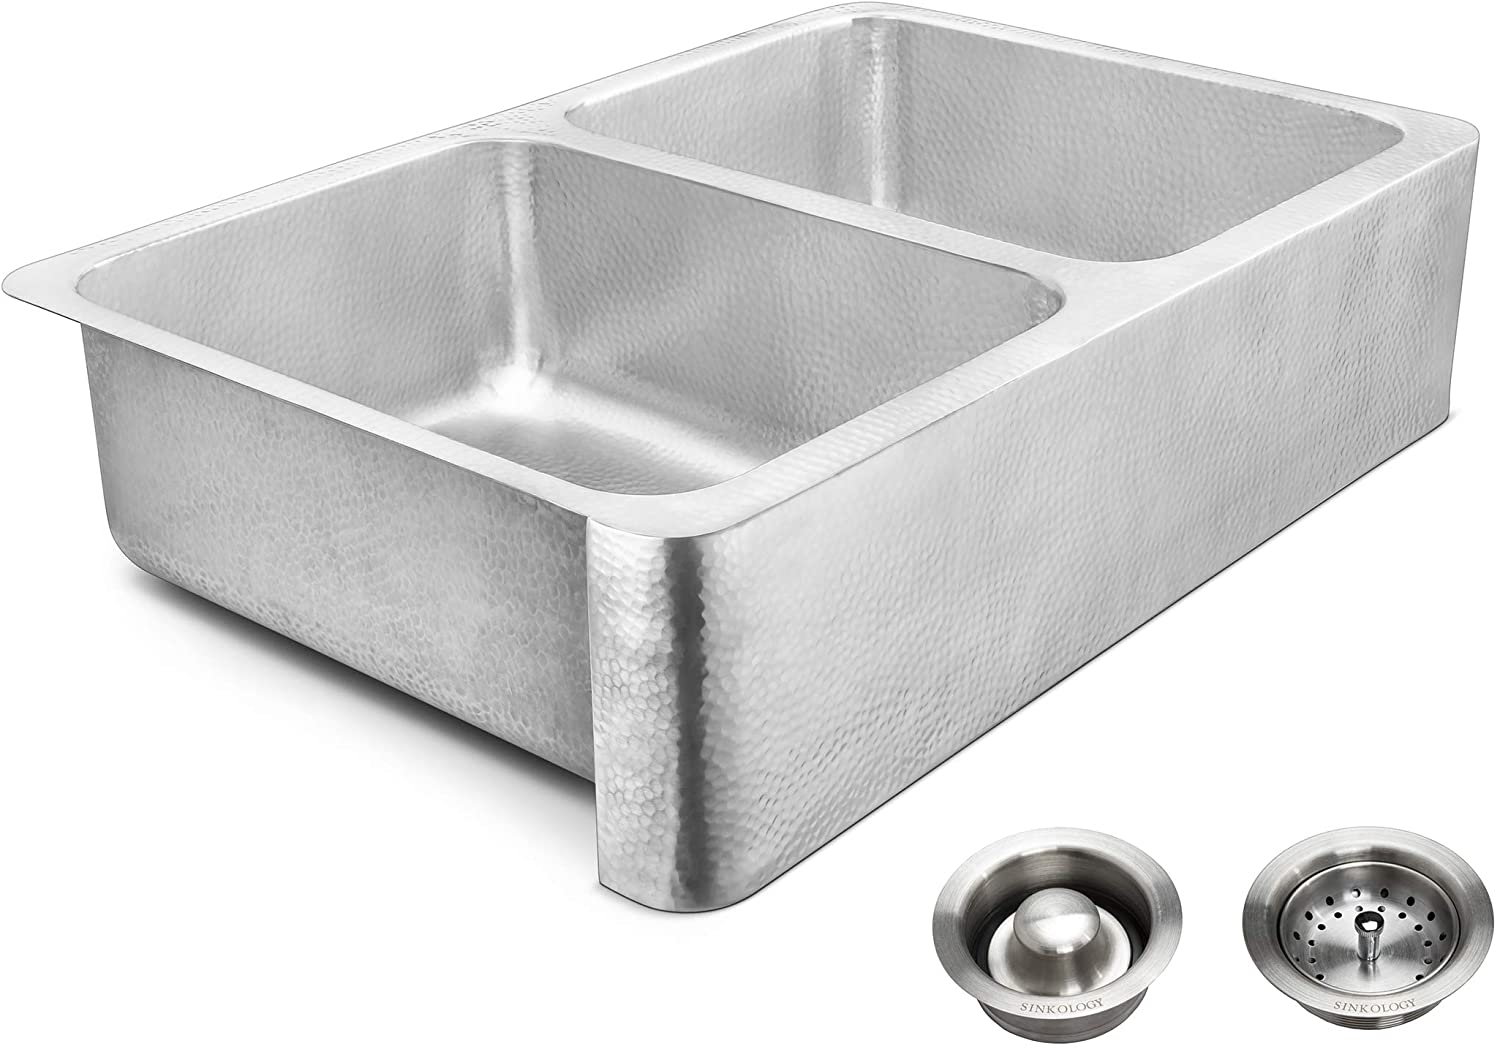 Sinkology SK702-33HSB-AMZ-BD Anning Farmhouse 32 in. Double Bowl Brushed and Drains Crafted Stainless Steel Kitchen Sink